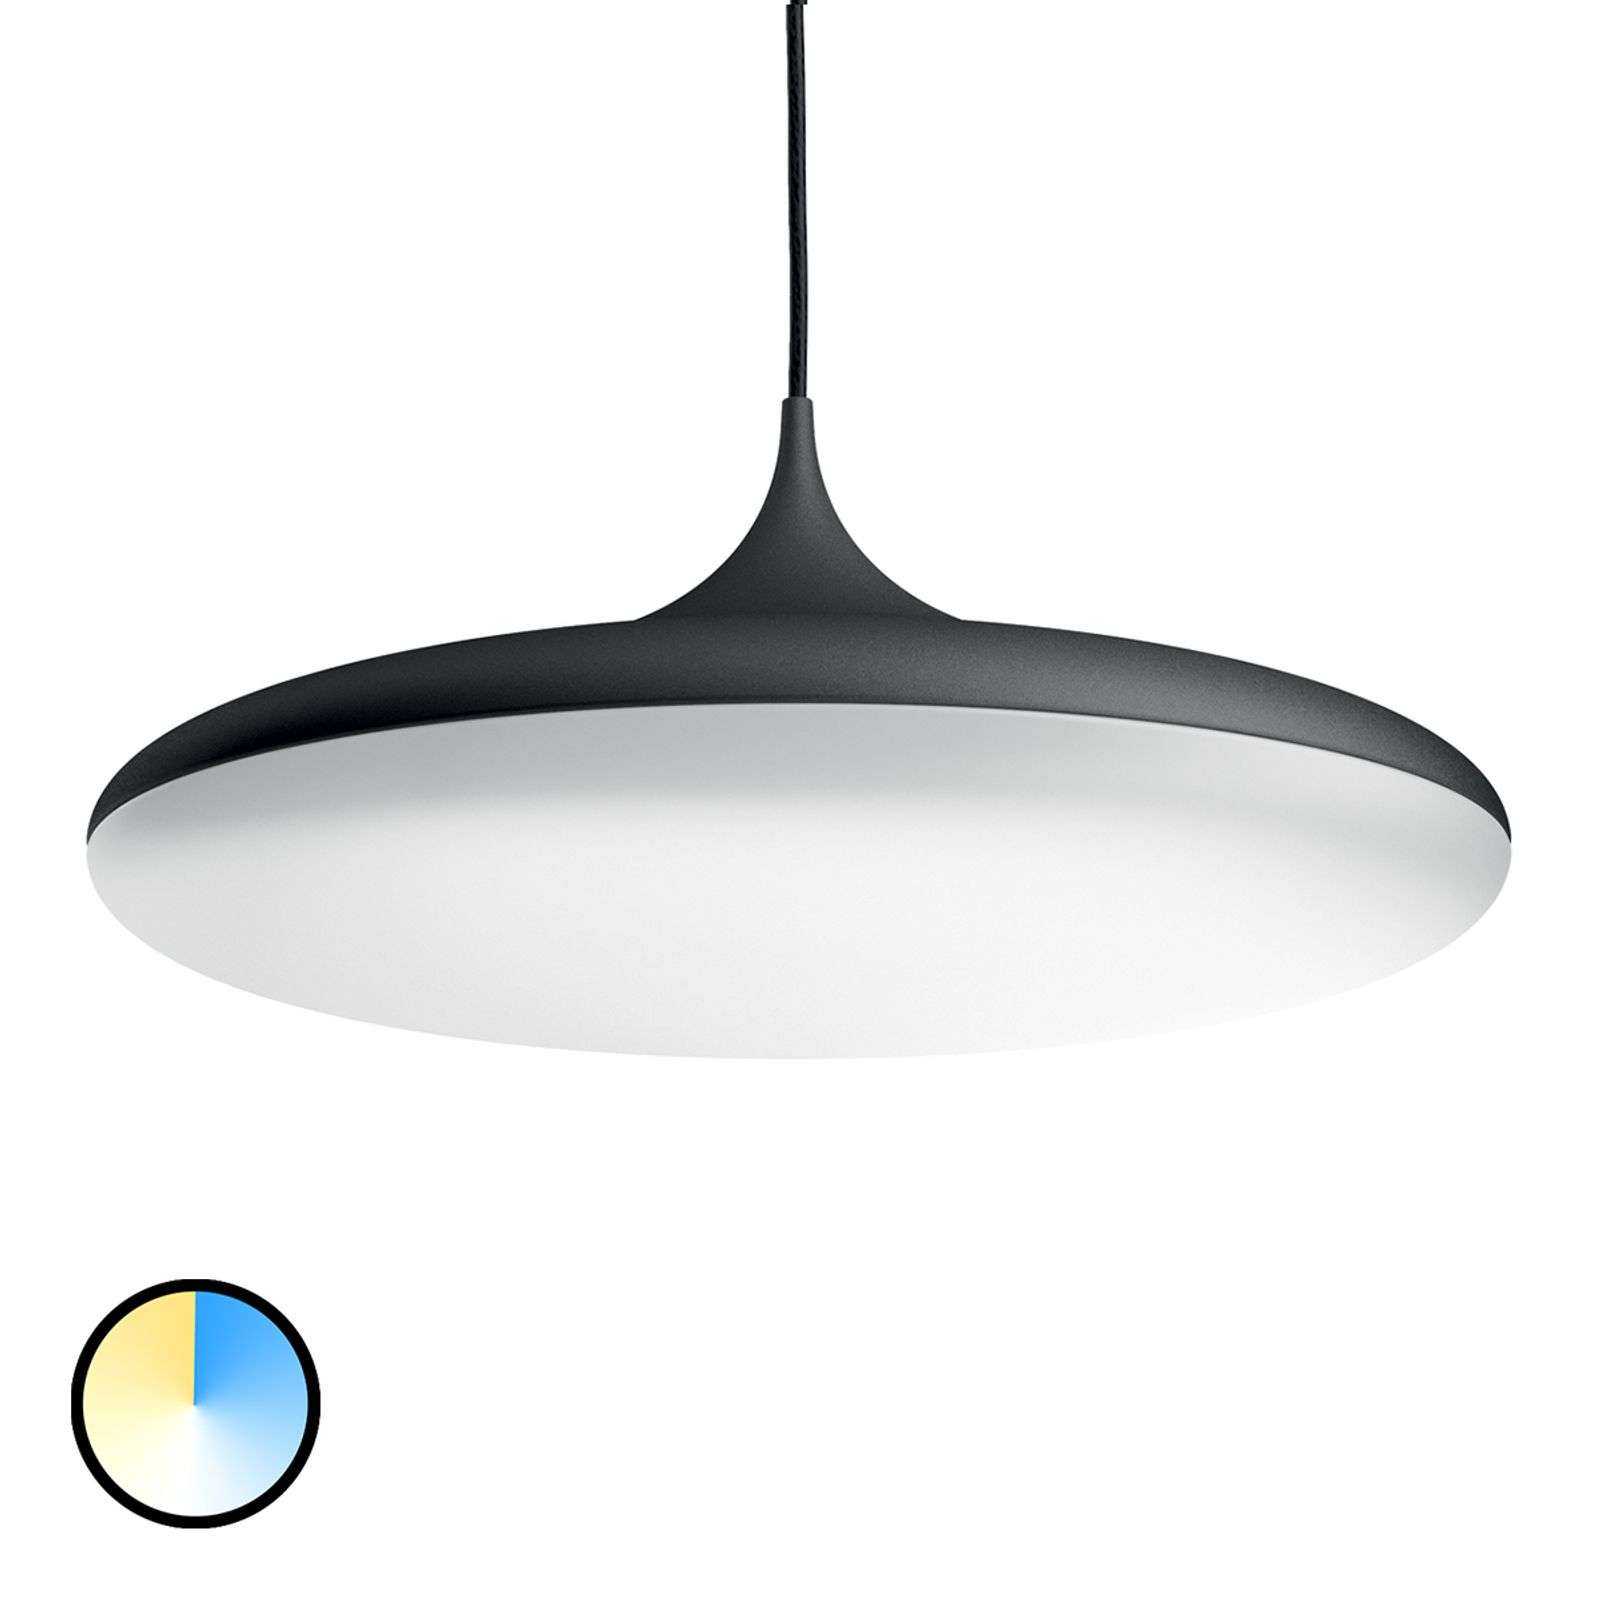 Lámpara colgante LED Cher Philips Hue, negro